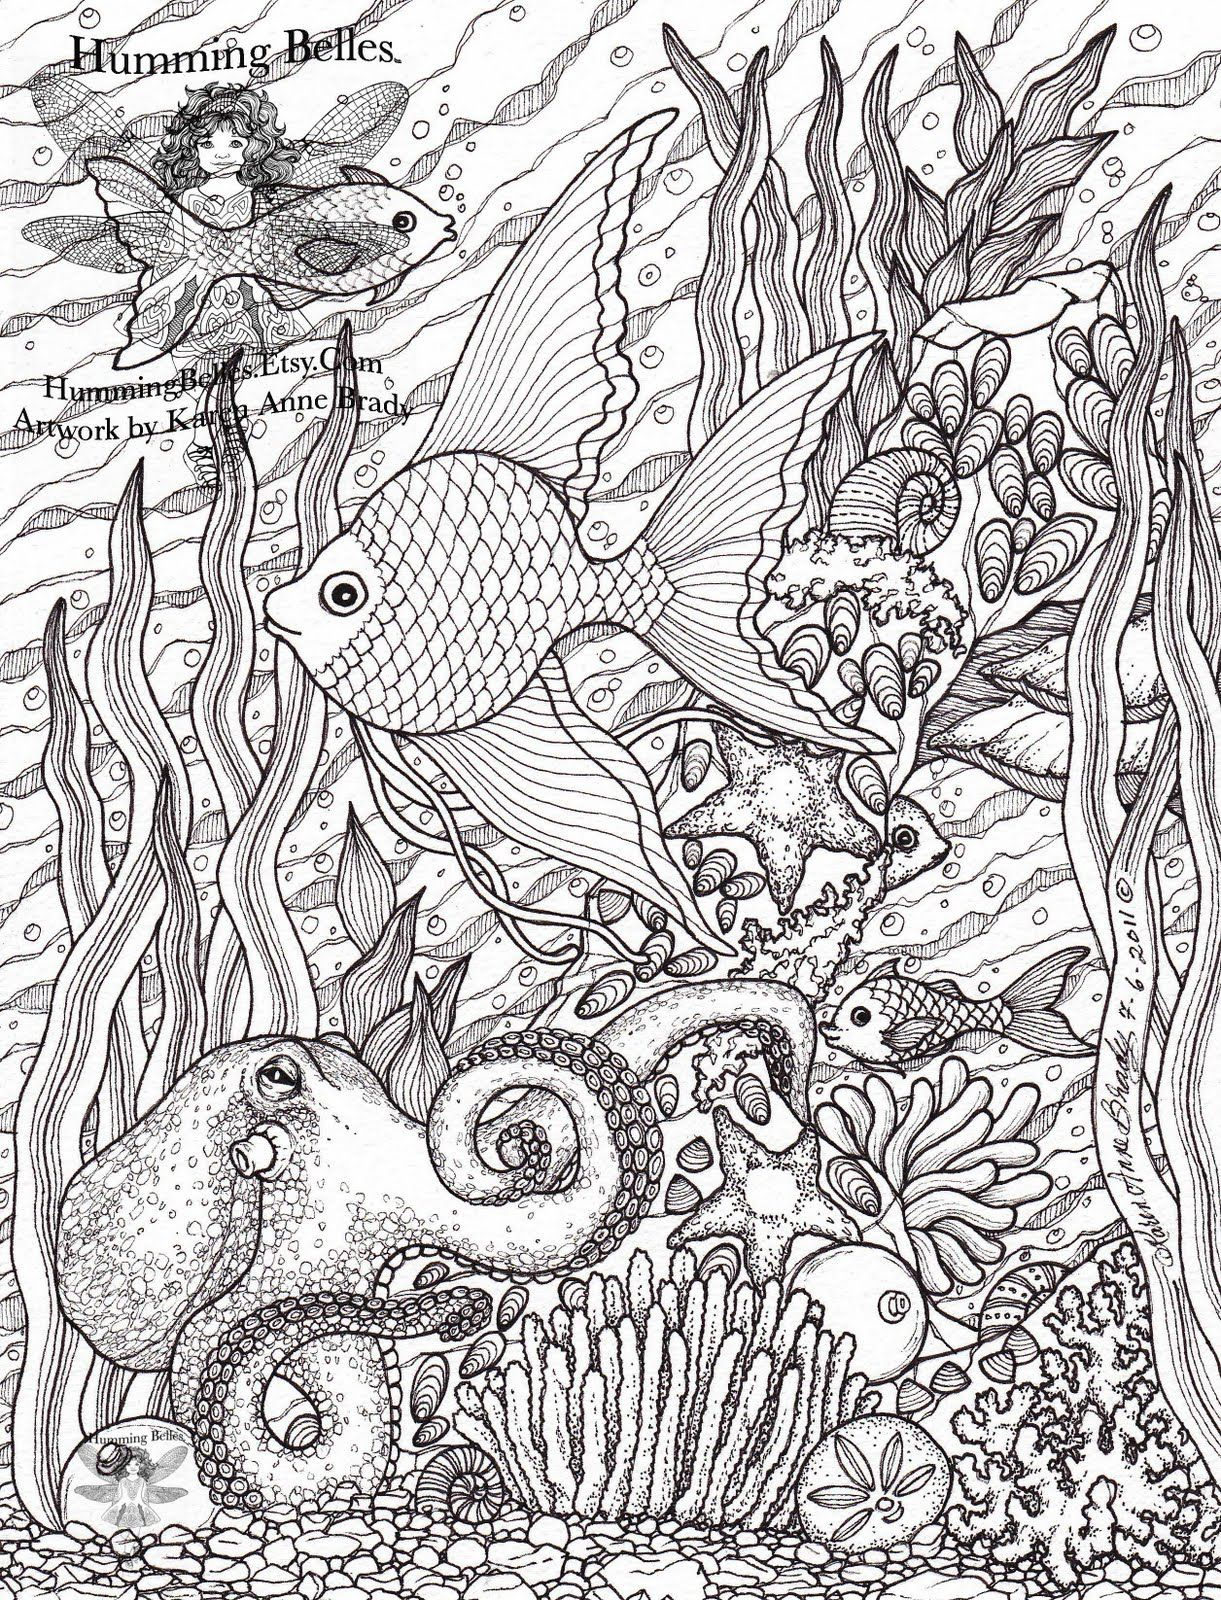 Intricate Coloring Pages For Adults Humming Belles Intricate Coloring Pages Adults